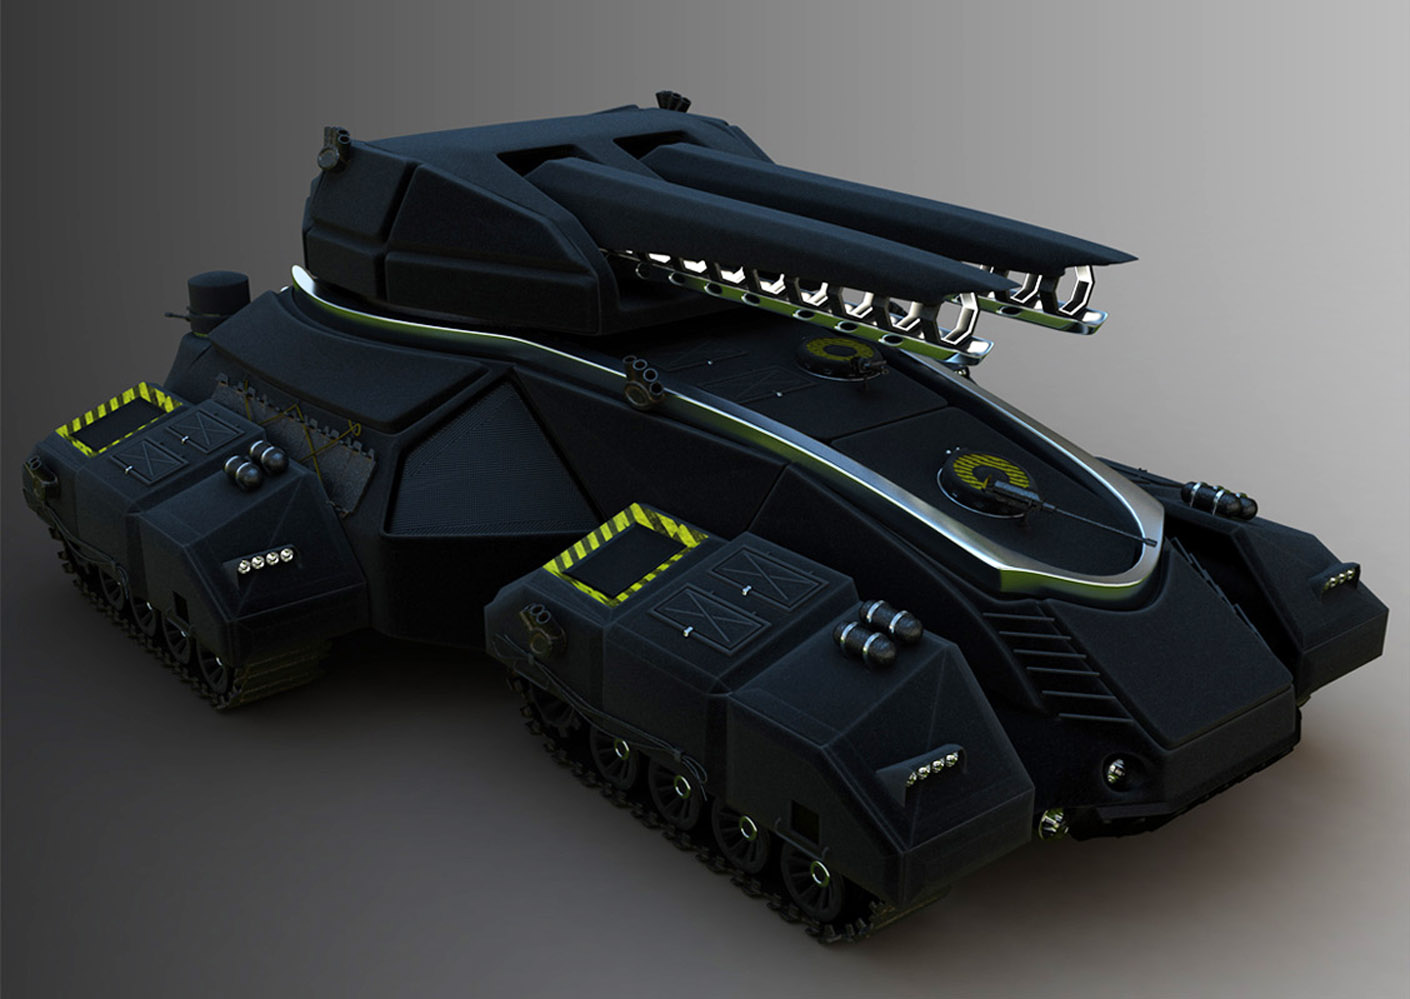 Image Diogo Valle Bittar Hovertank Futuristic Future Battle Tank - Cool cars with guns